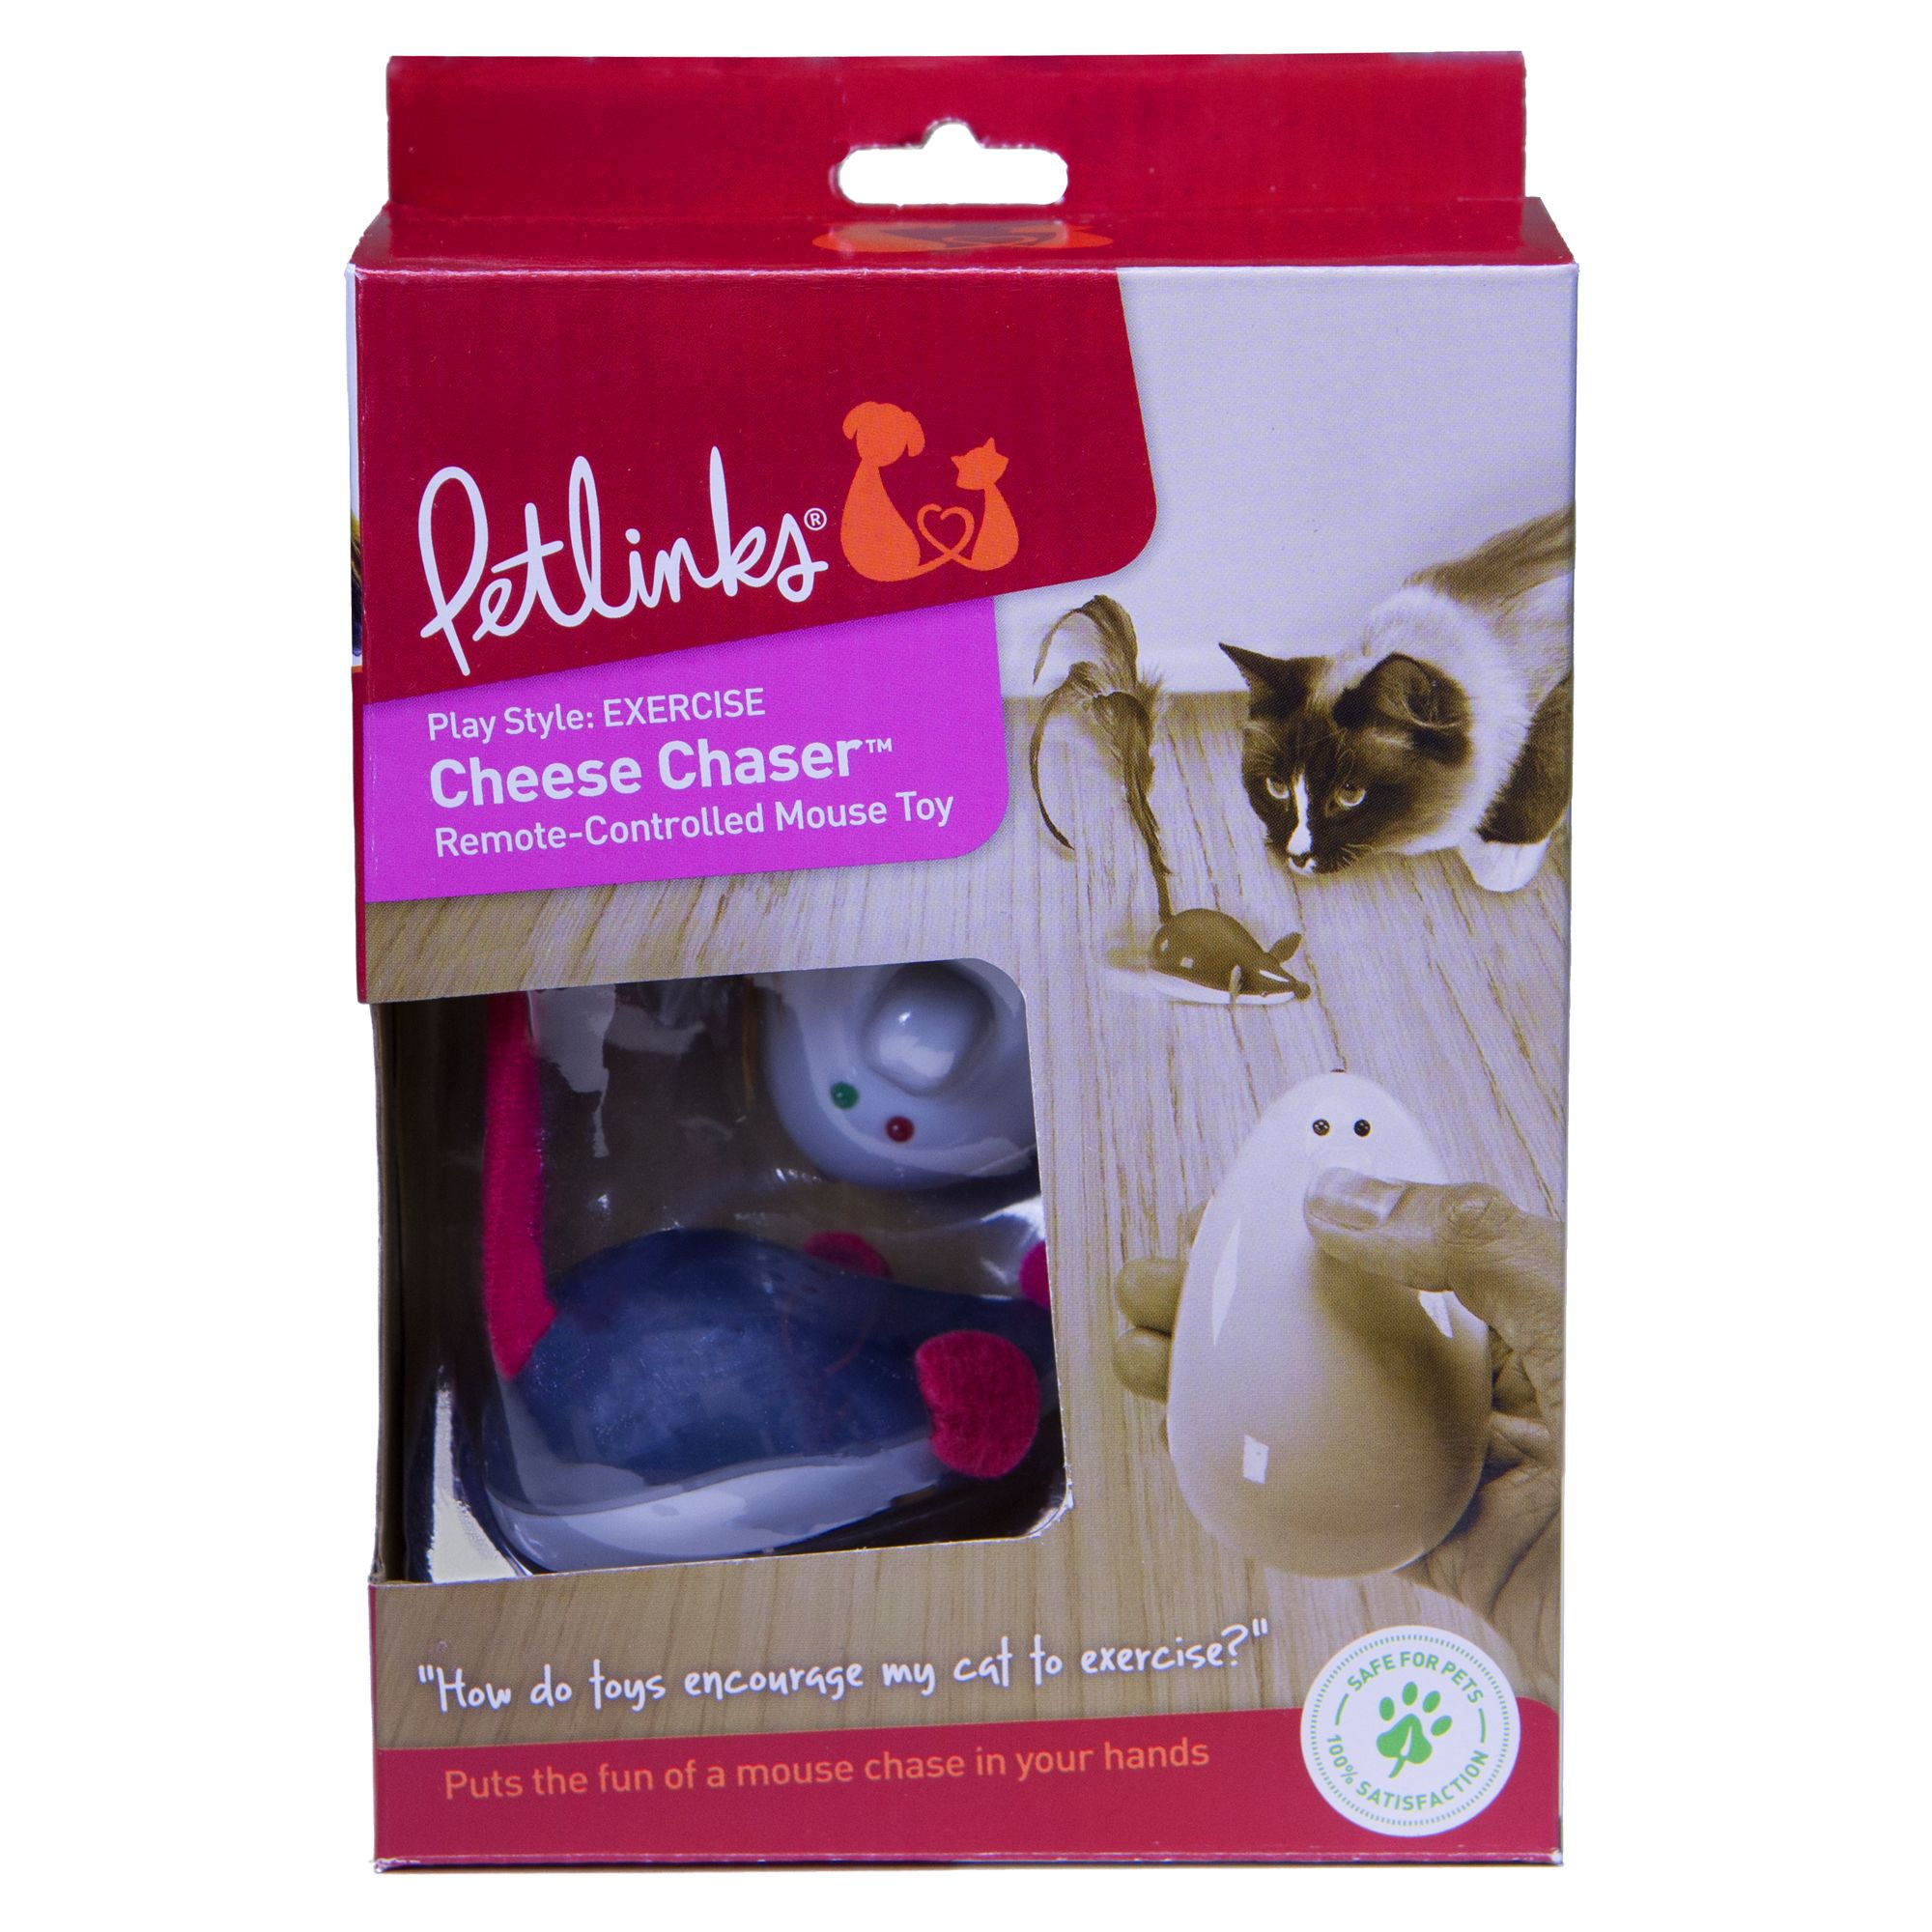 Petlinks Cheese Chaser Mouse and Remote Control Cat Toy, Gray 5126683